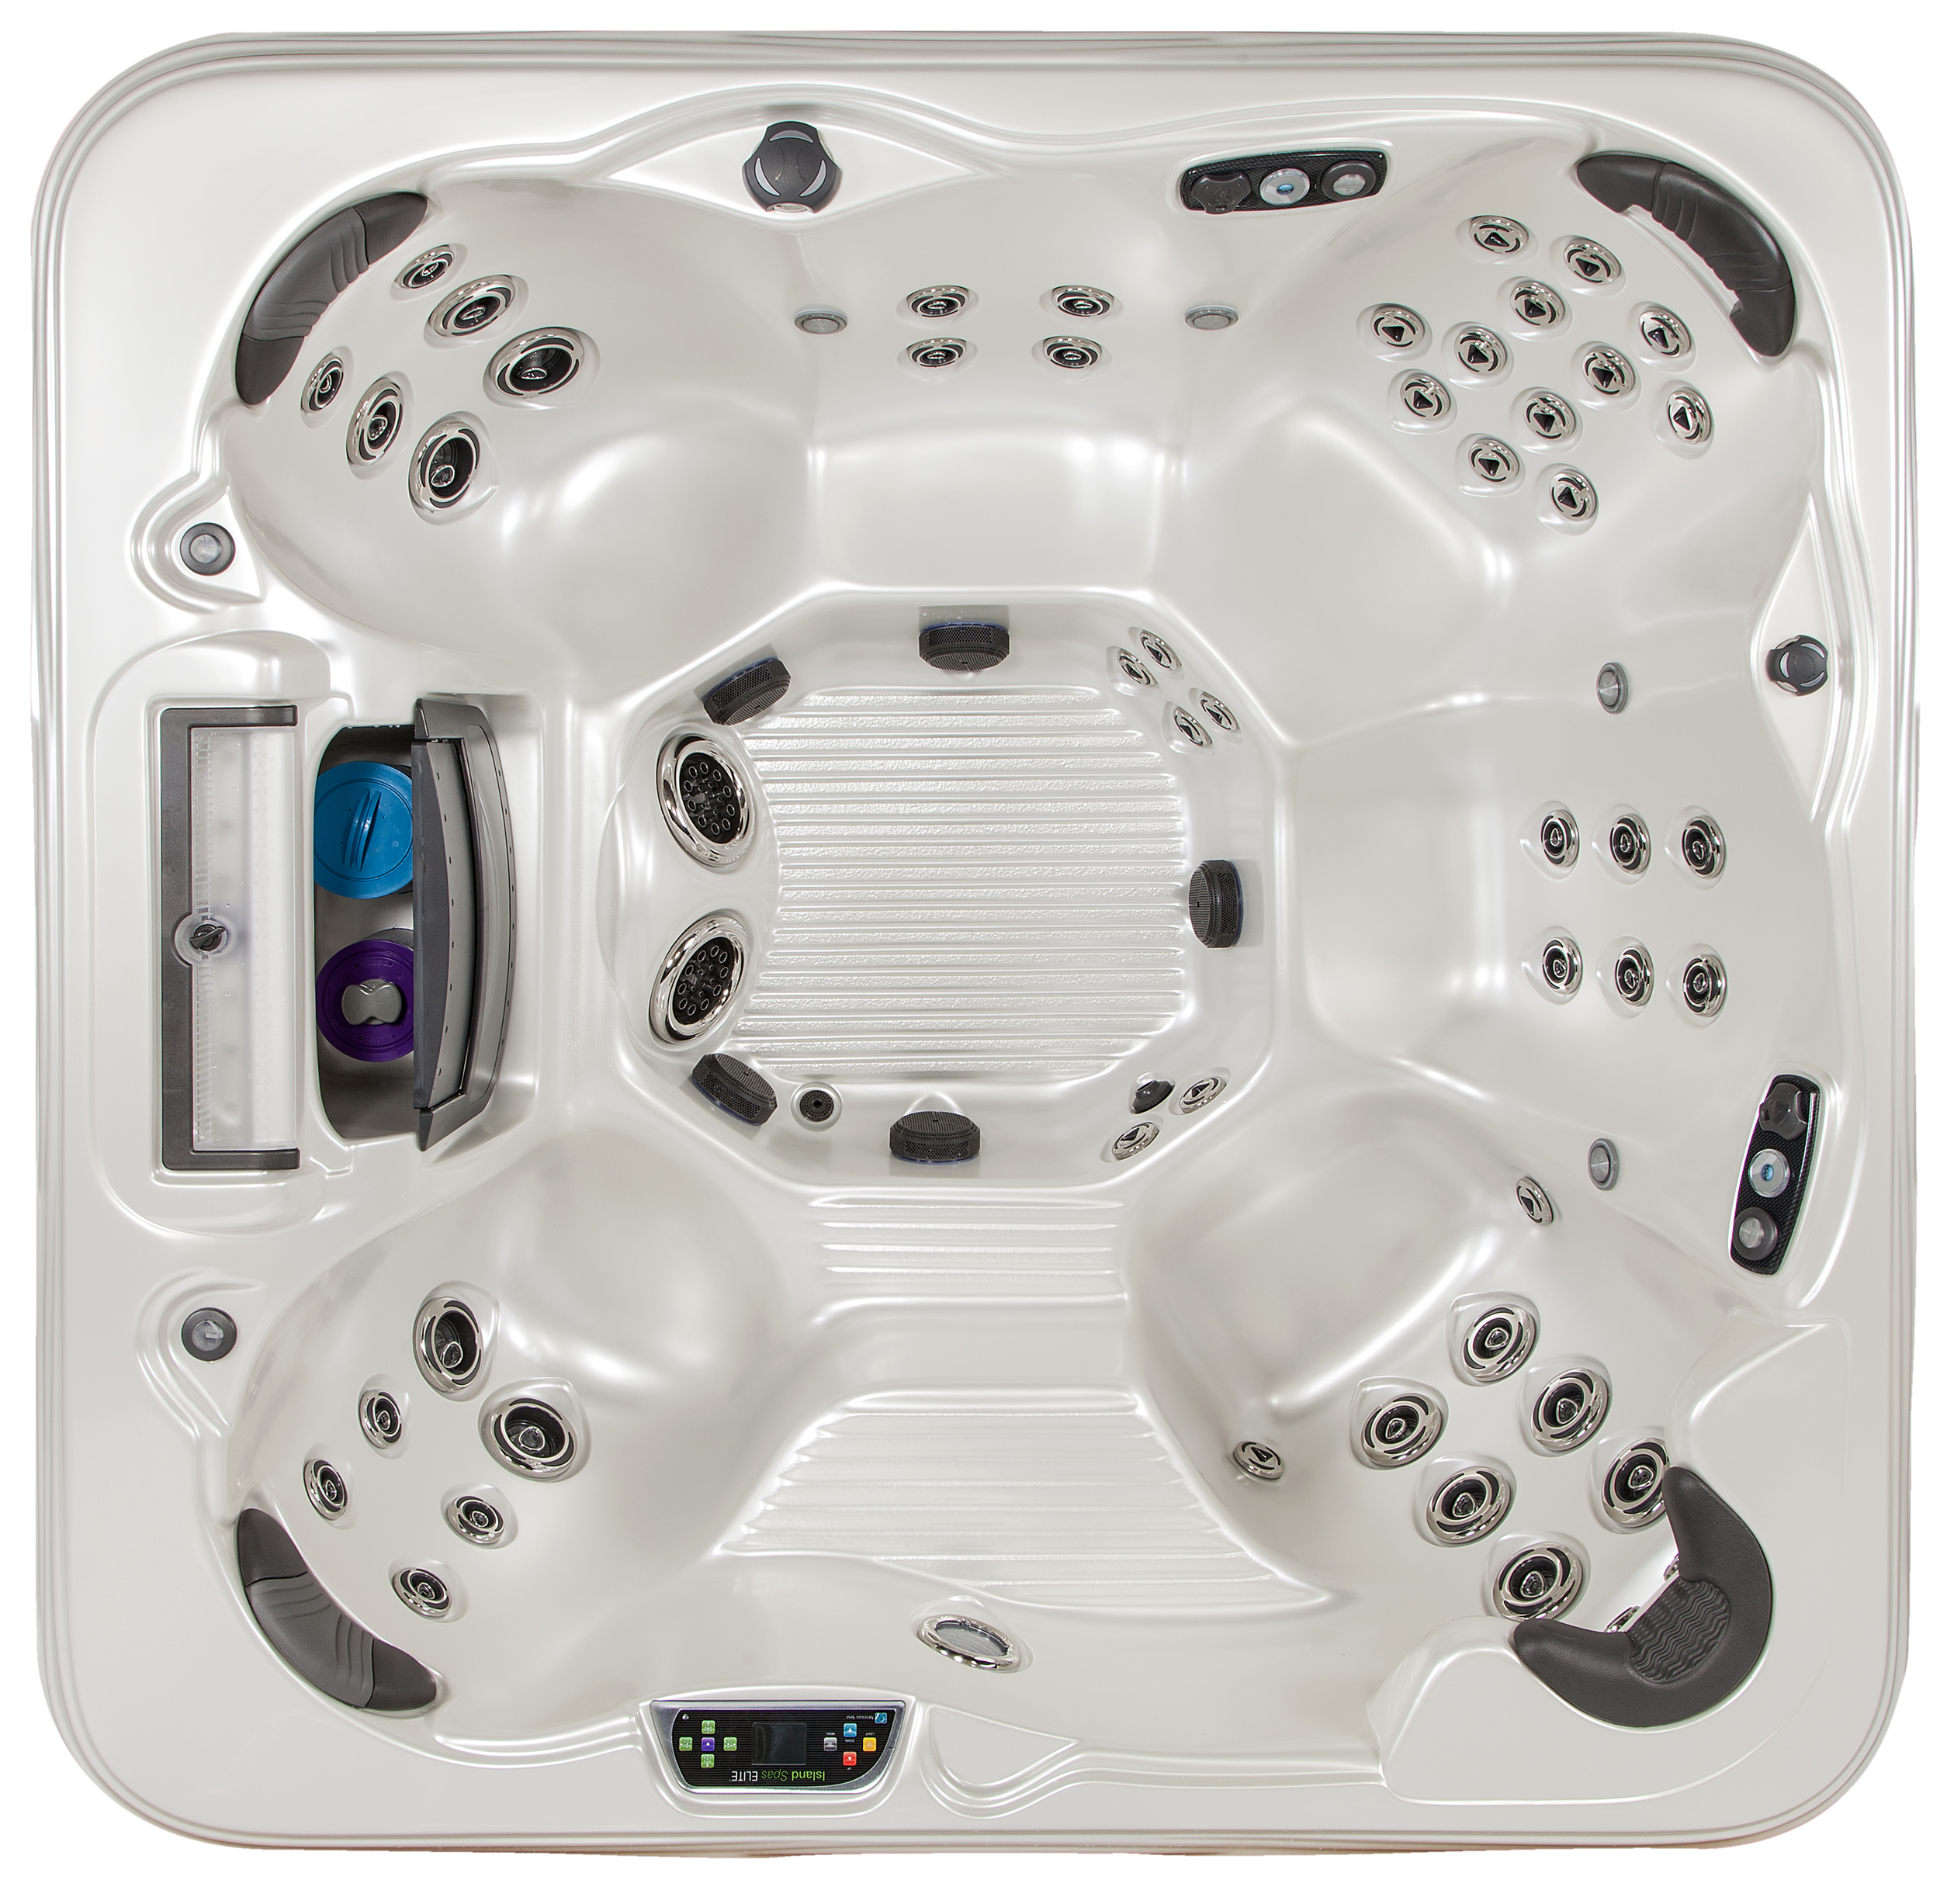 The Captiva Elite 7' Hot Tub by Island Spas available at Prestige Pools and Spas